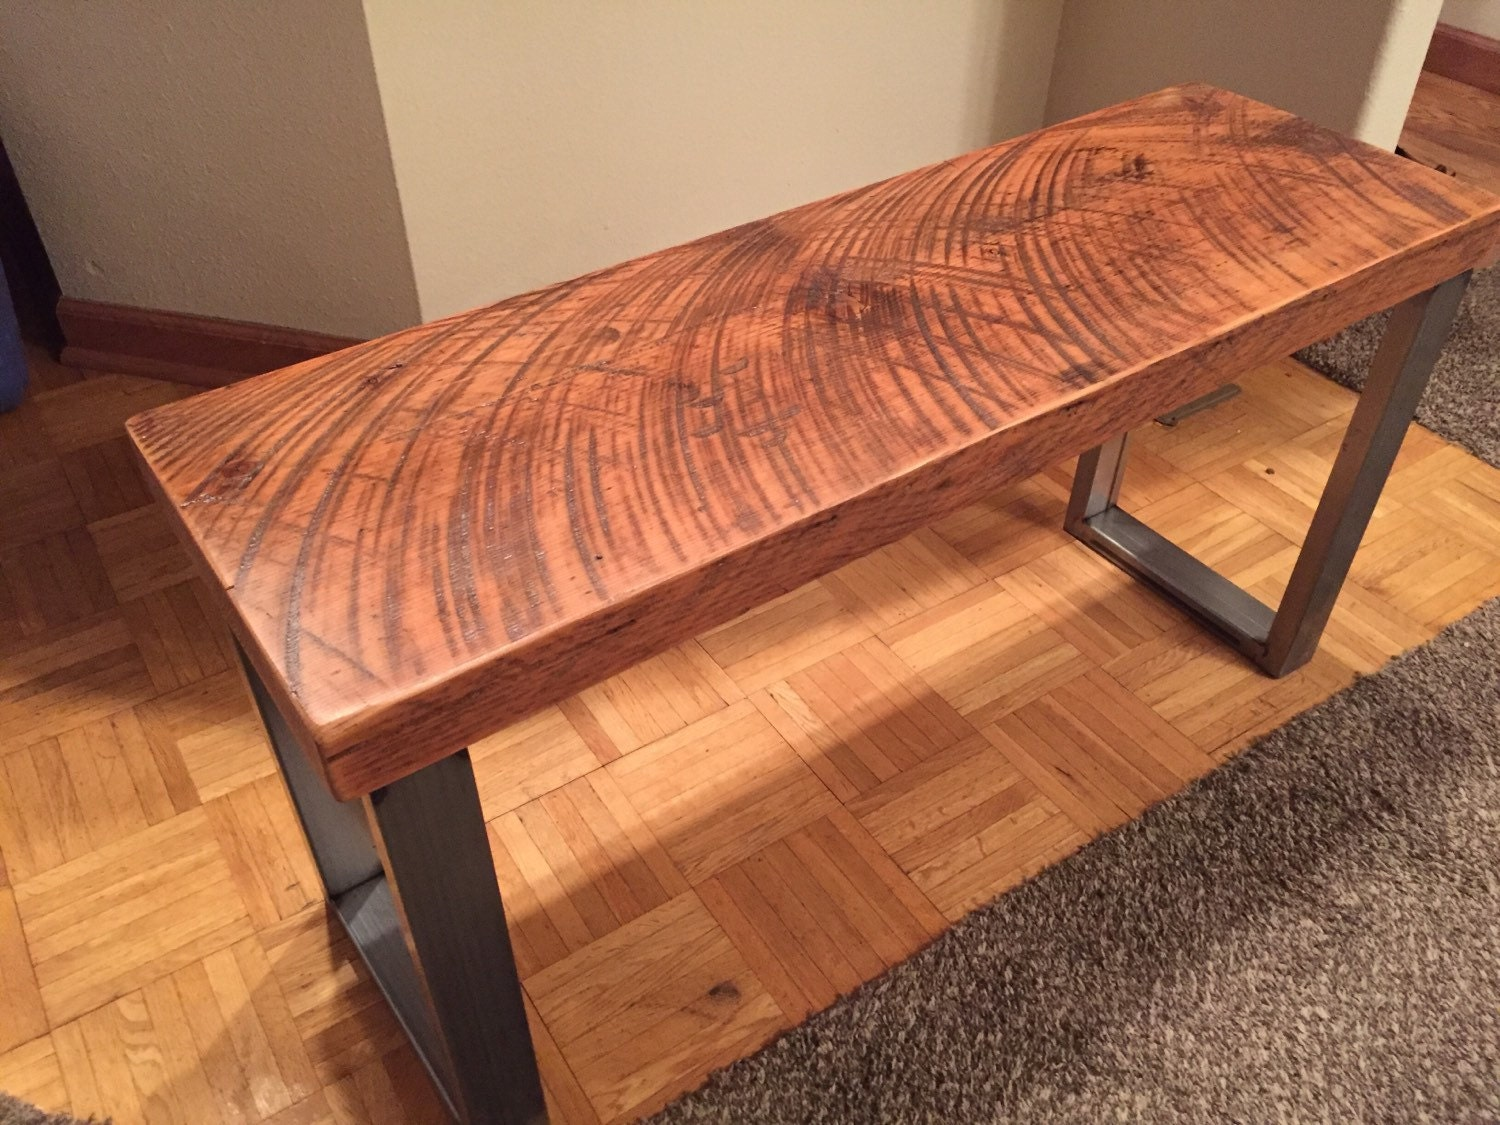 Solid Cherry Dining Room Table Industrial Bench Reclaimed Wood Bench Dining Room Bench